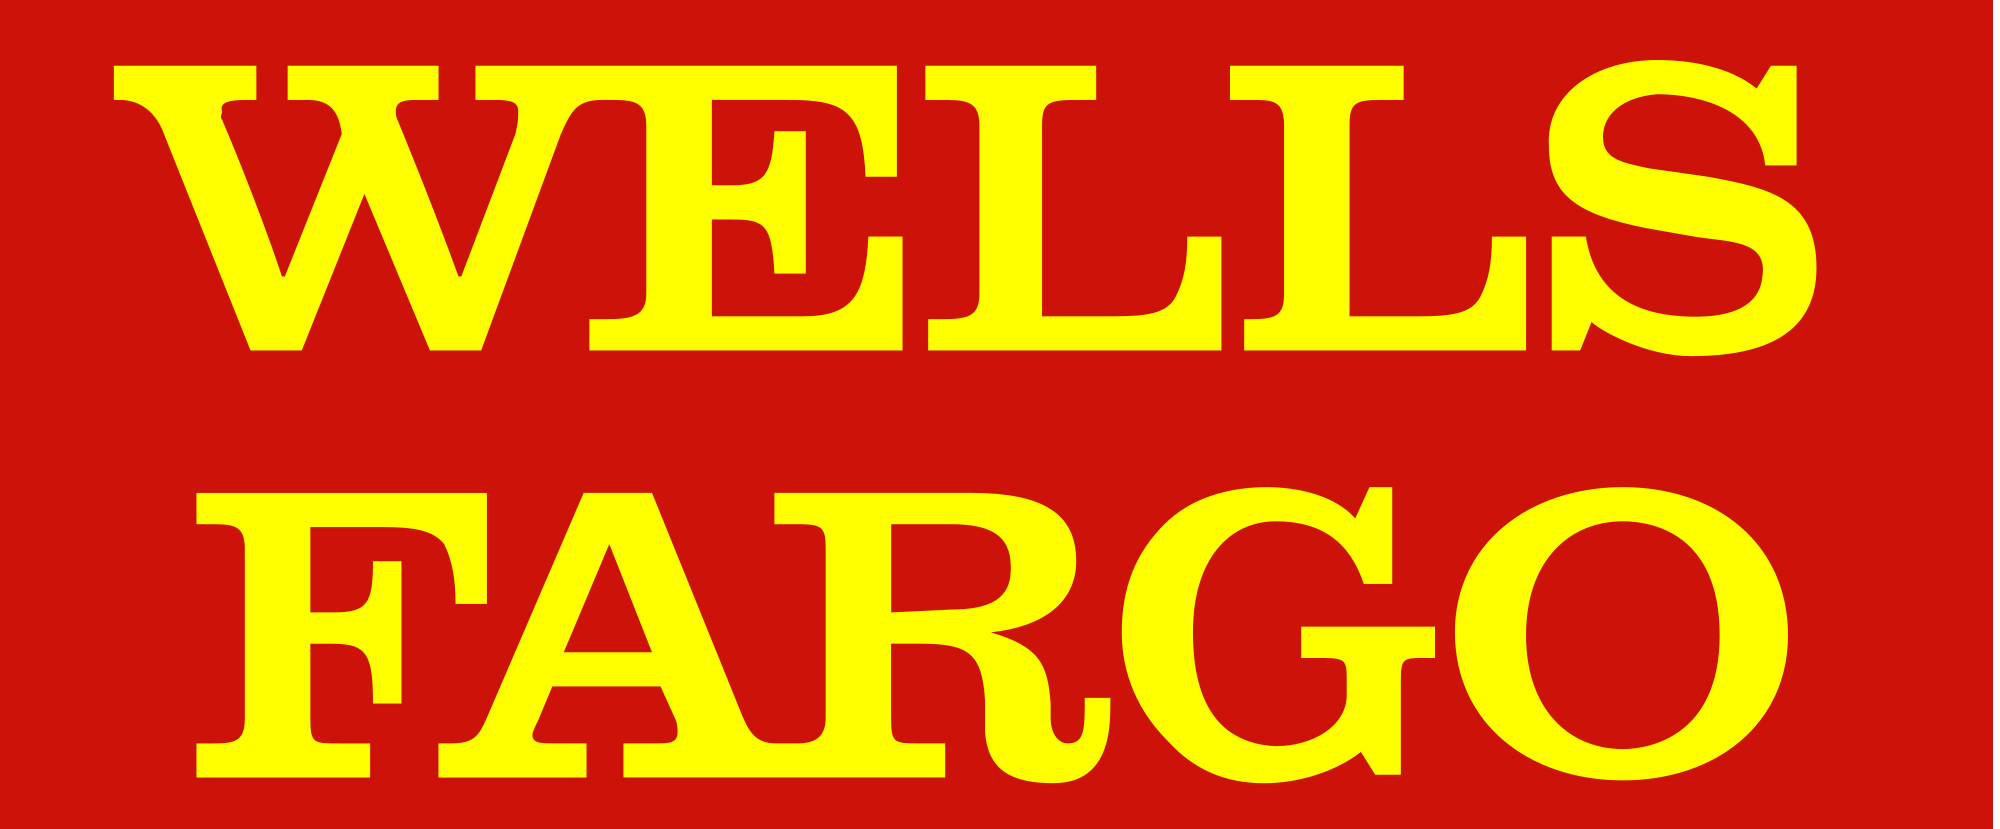 wells fargo small business loans